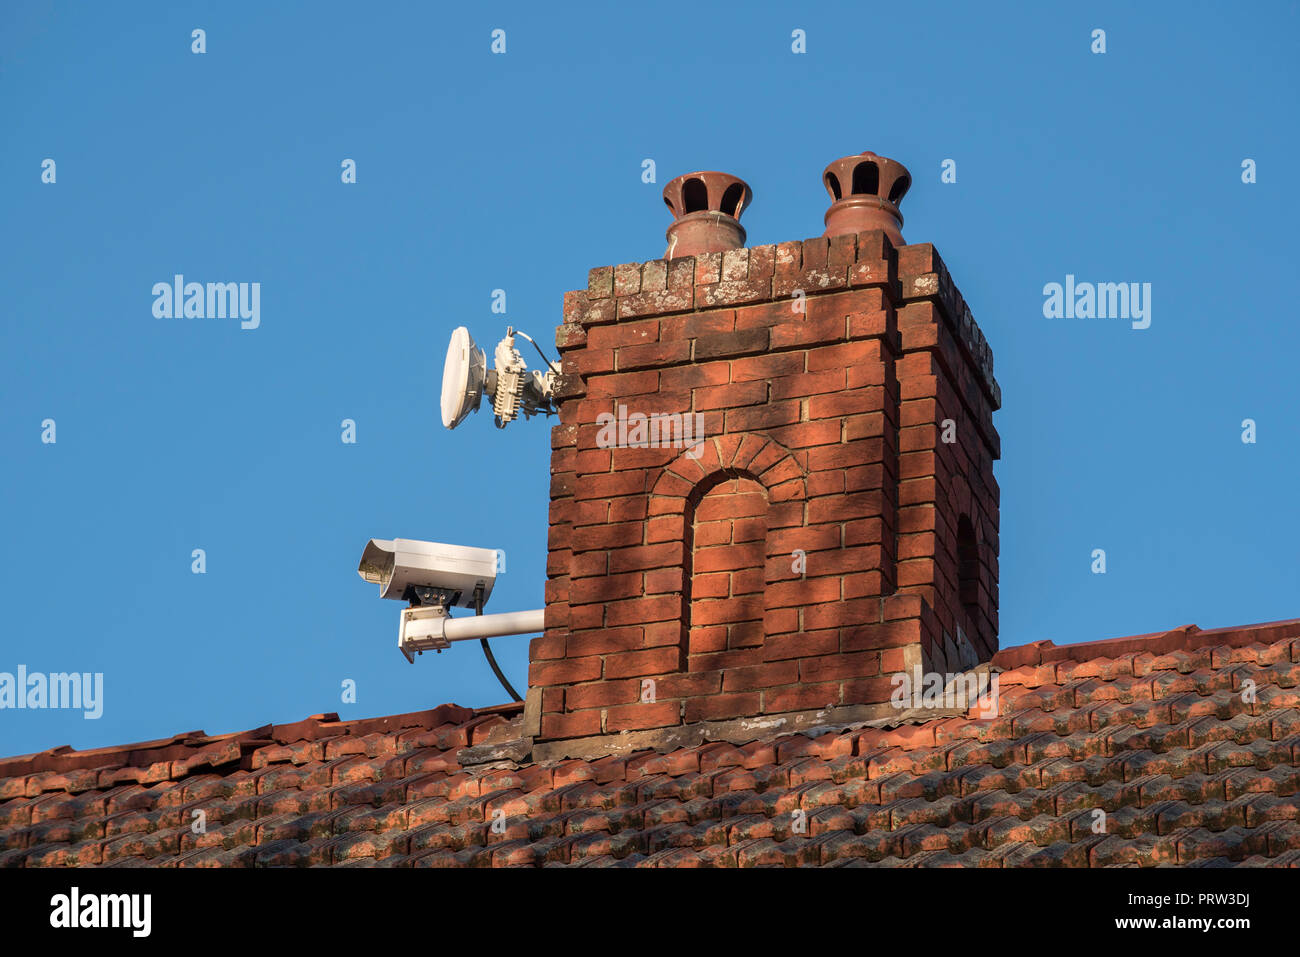 A remote controlled live traffic monitoring camera mounted on a chimney of a home facing the Pacific Highway at Gordon NSW, Australia - Stock Image